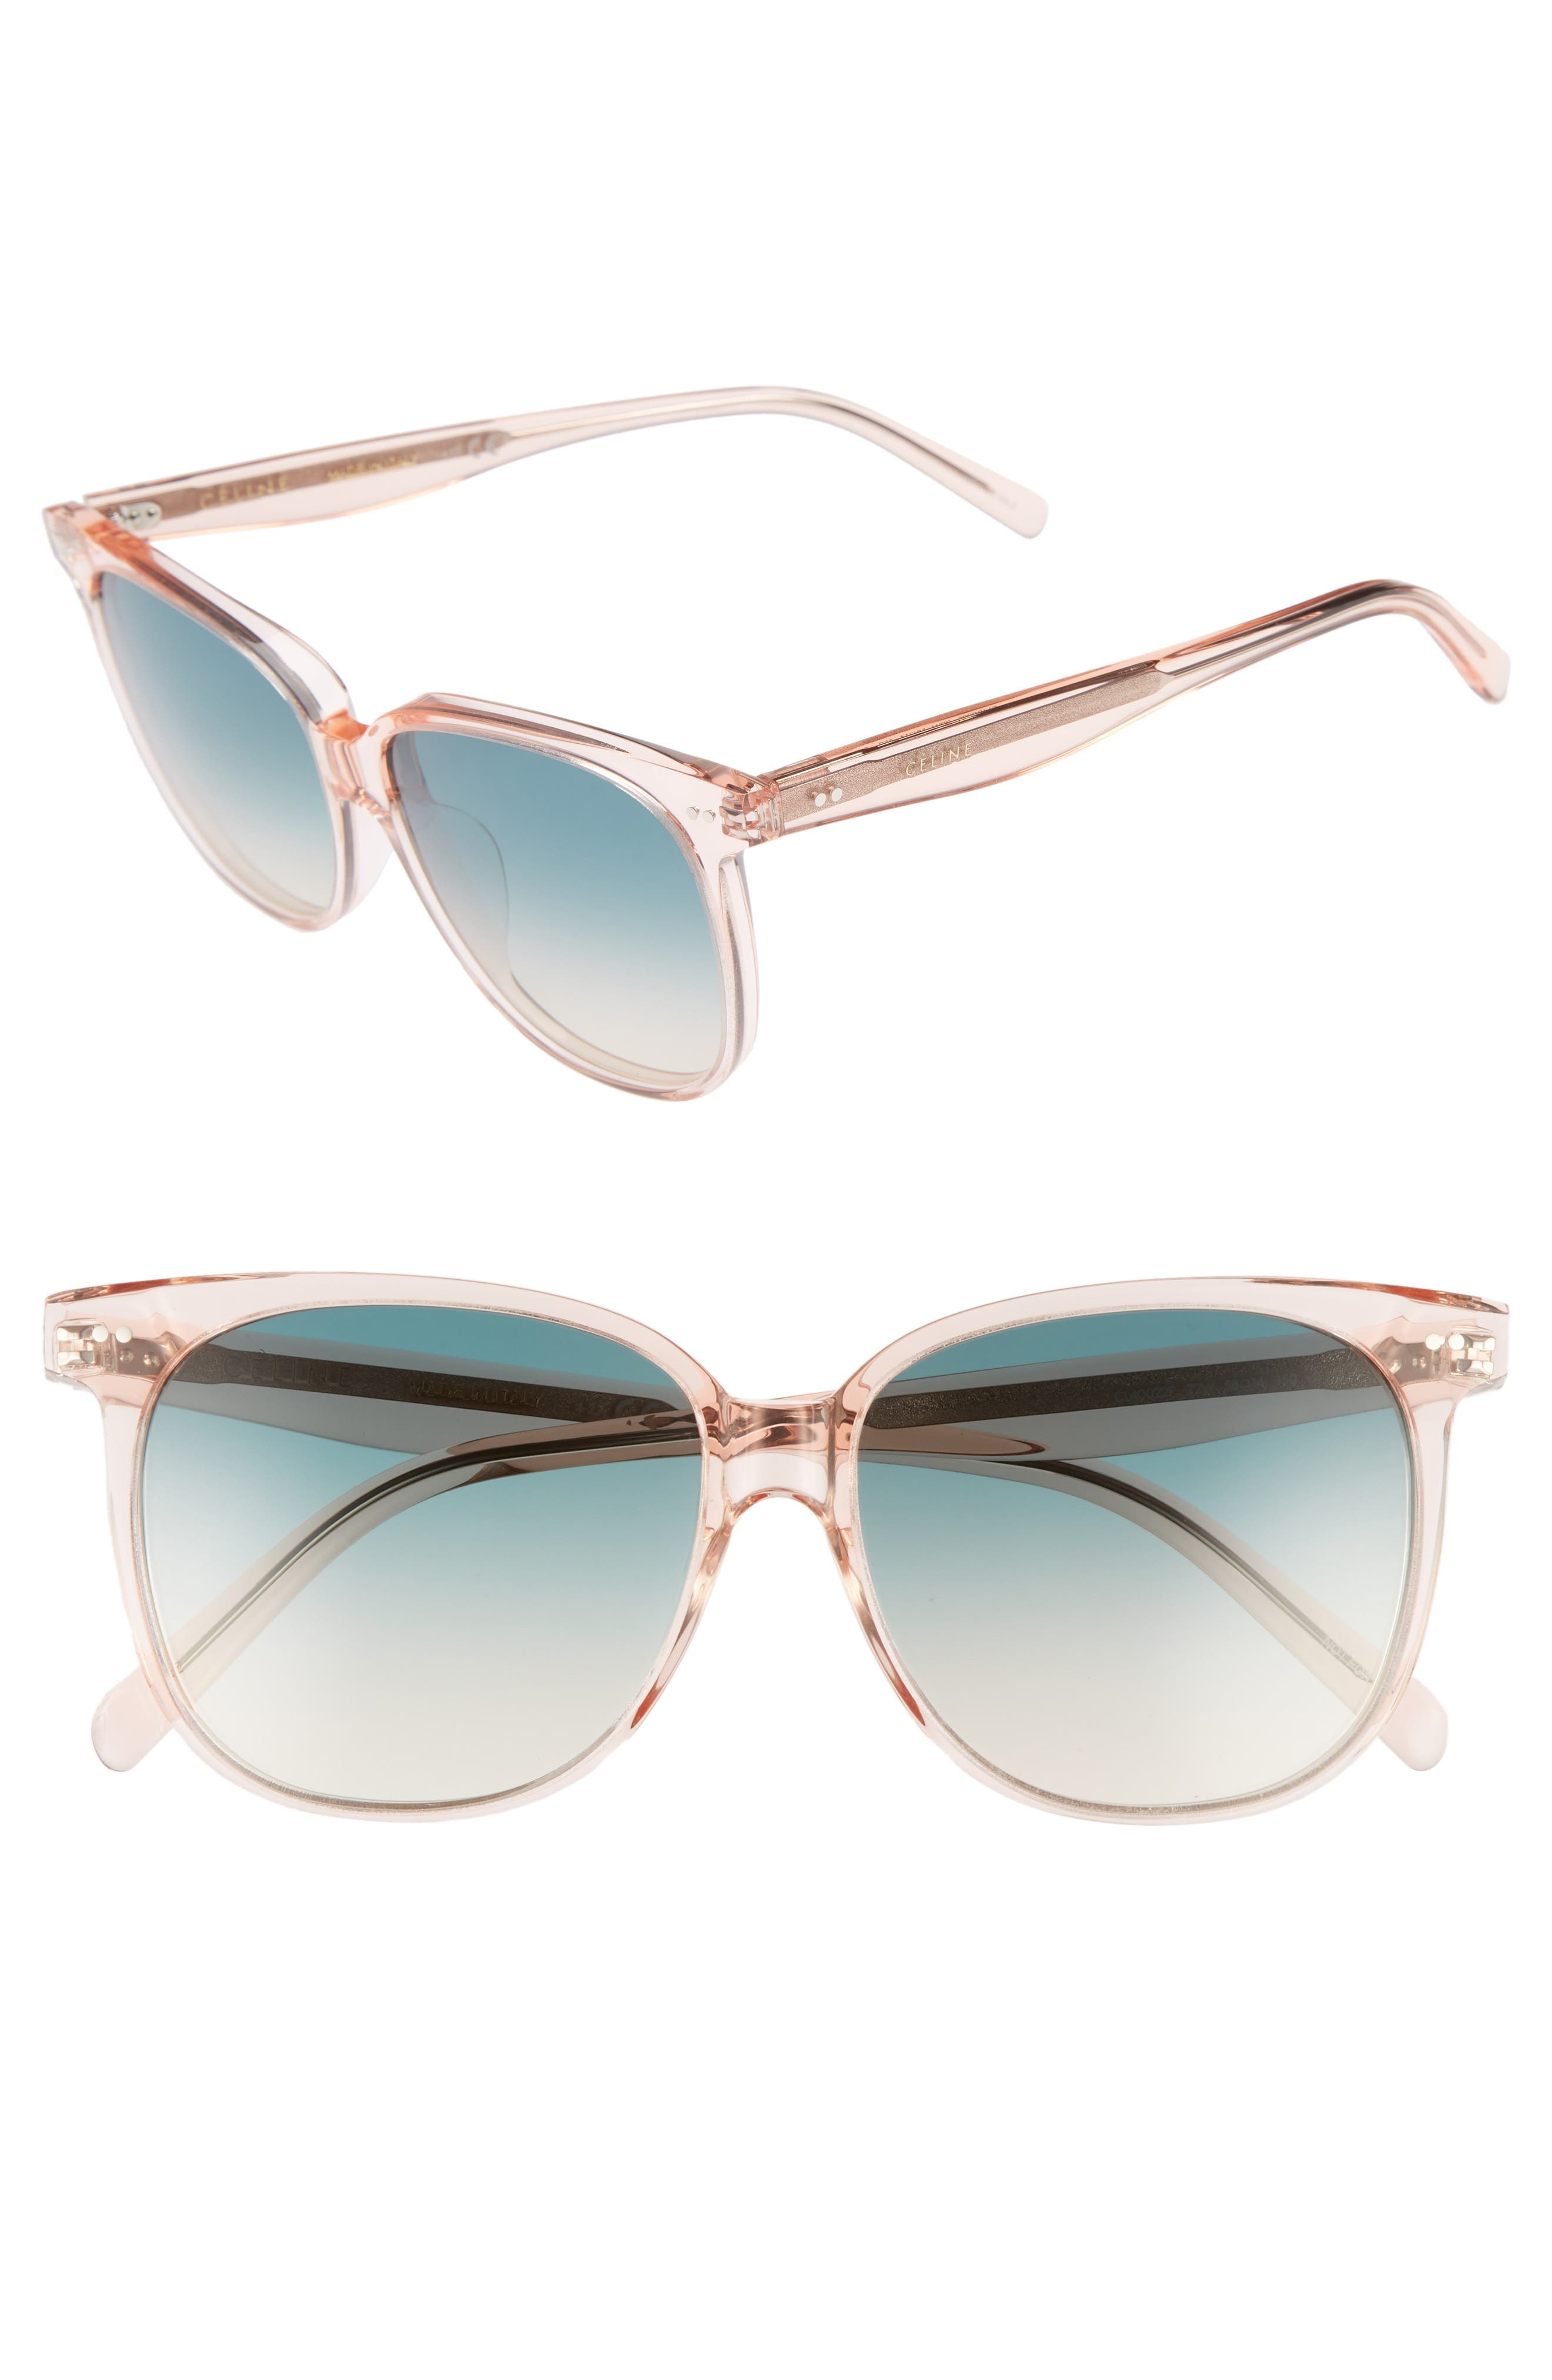 Céline Special Fit 58mm Square Sunglasses